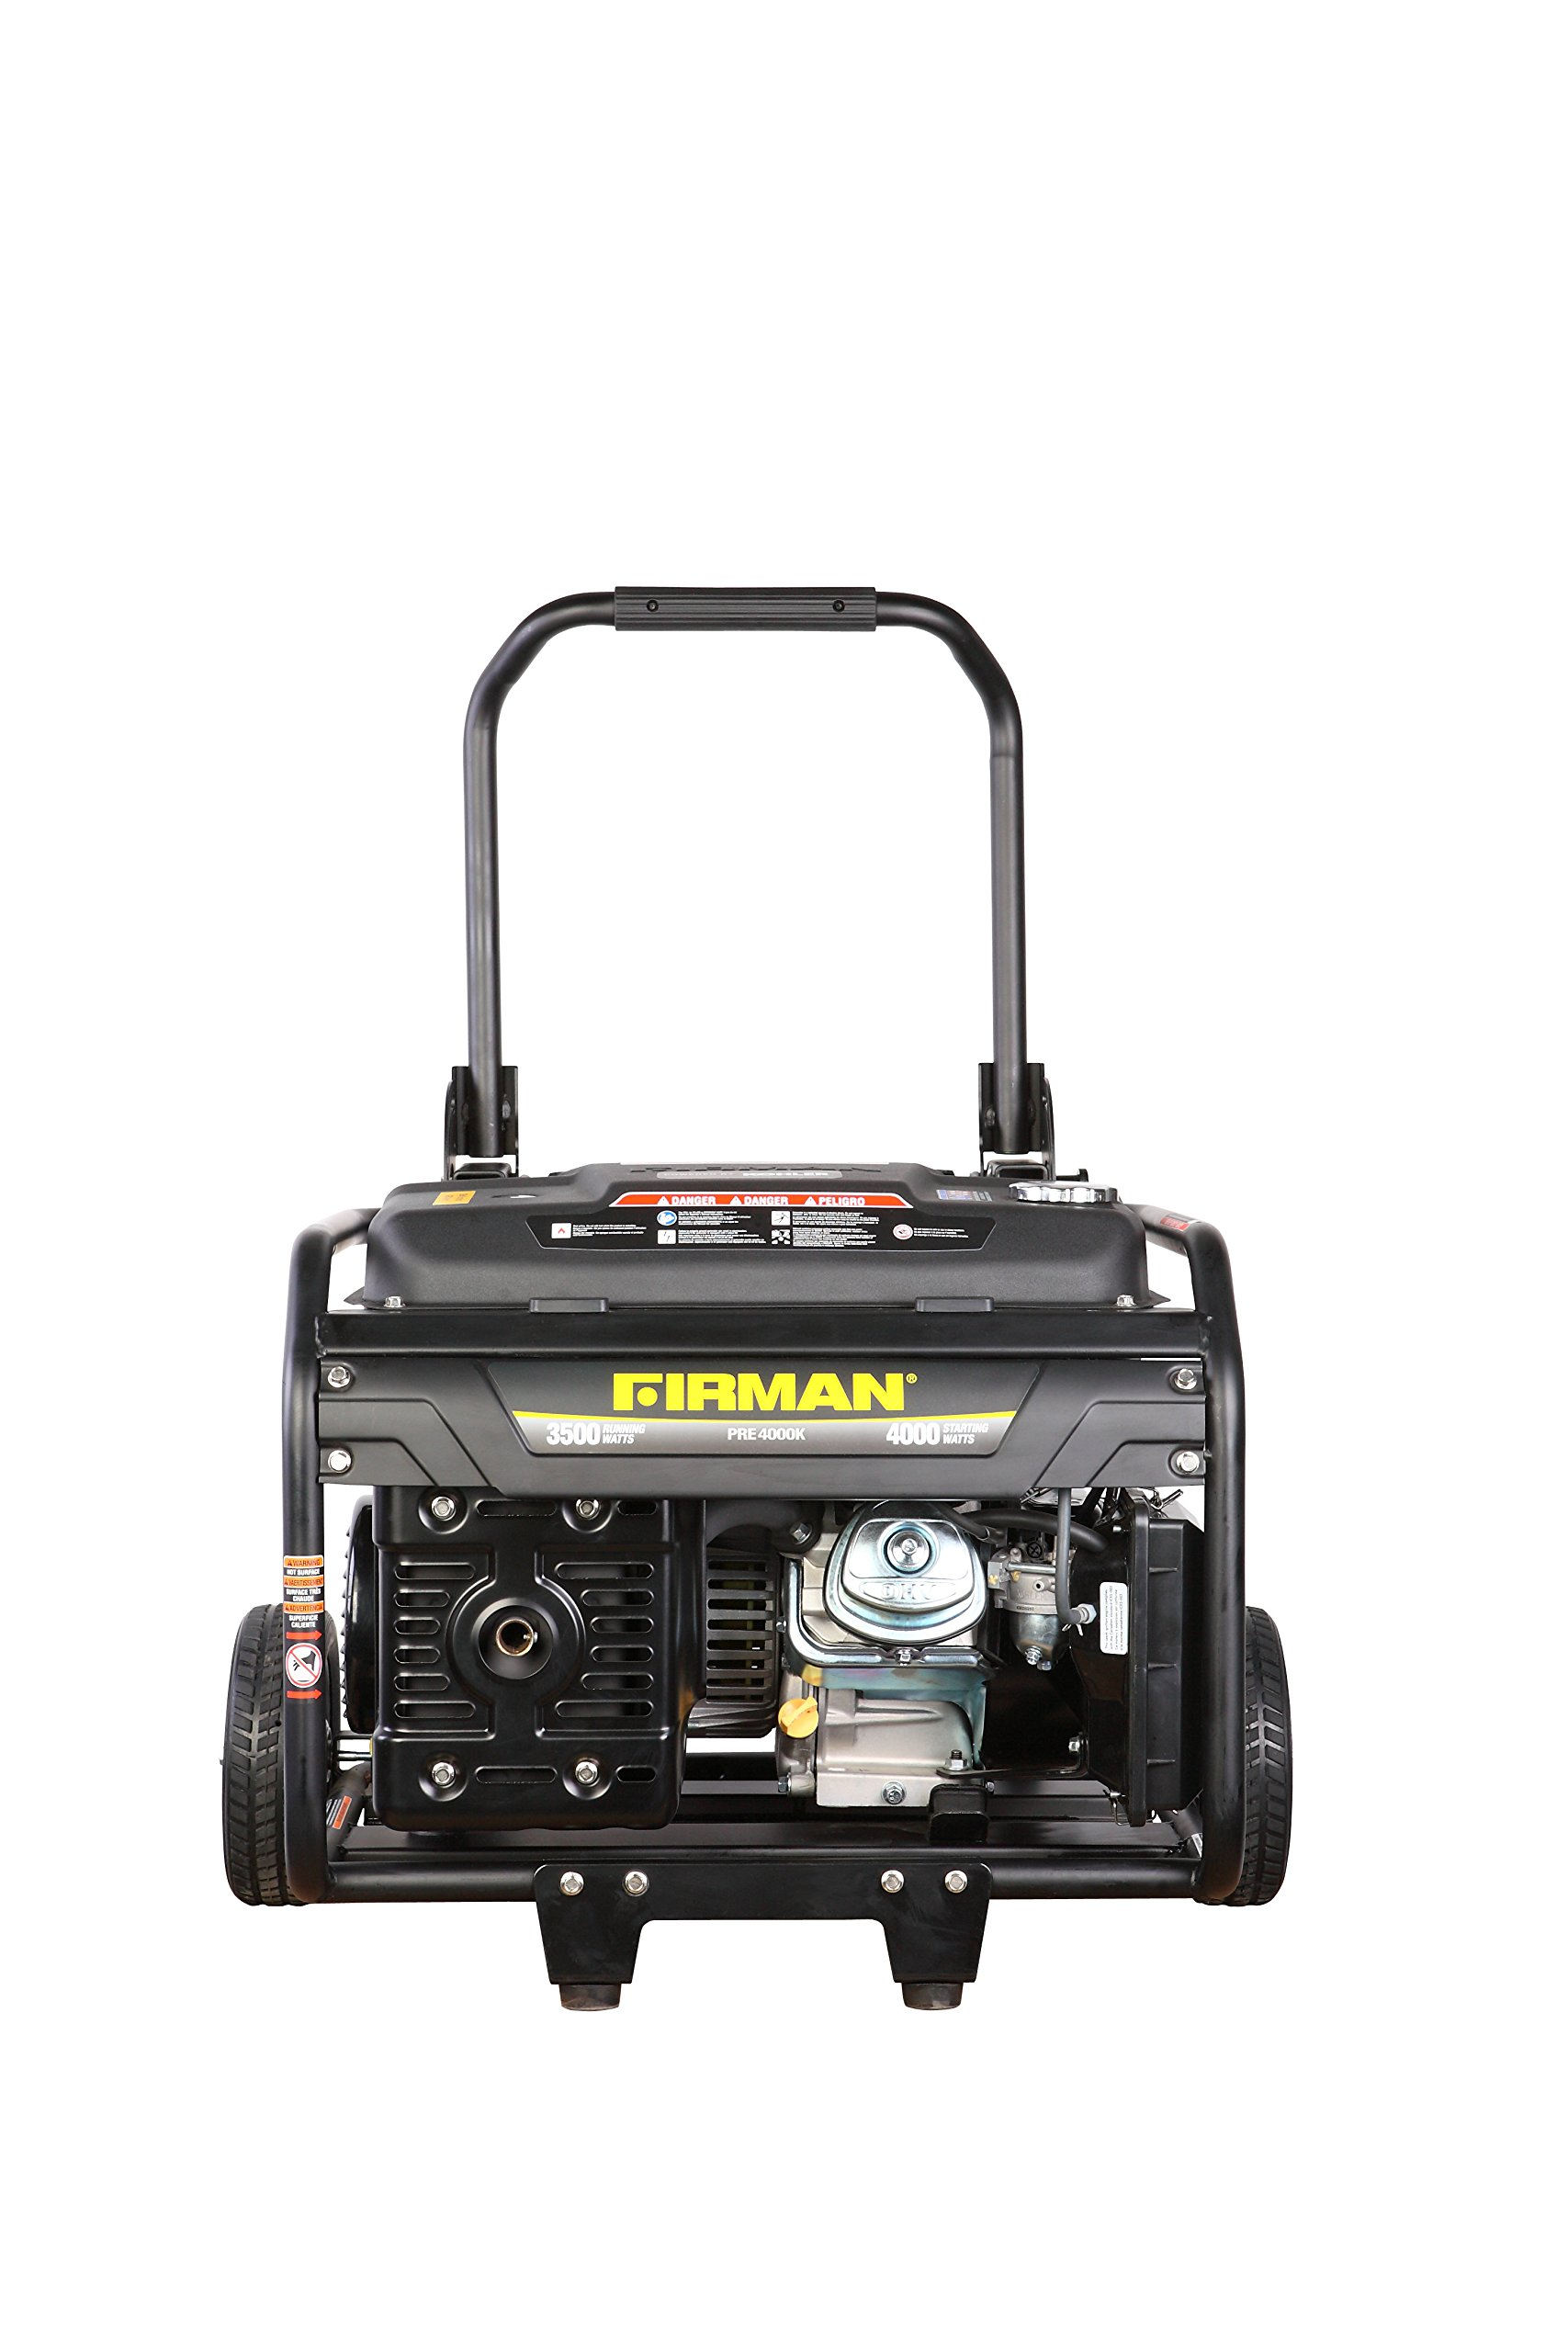 Firman Generators PRE4000K Gas Powered Portable Generator with